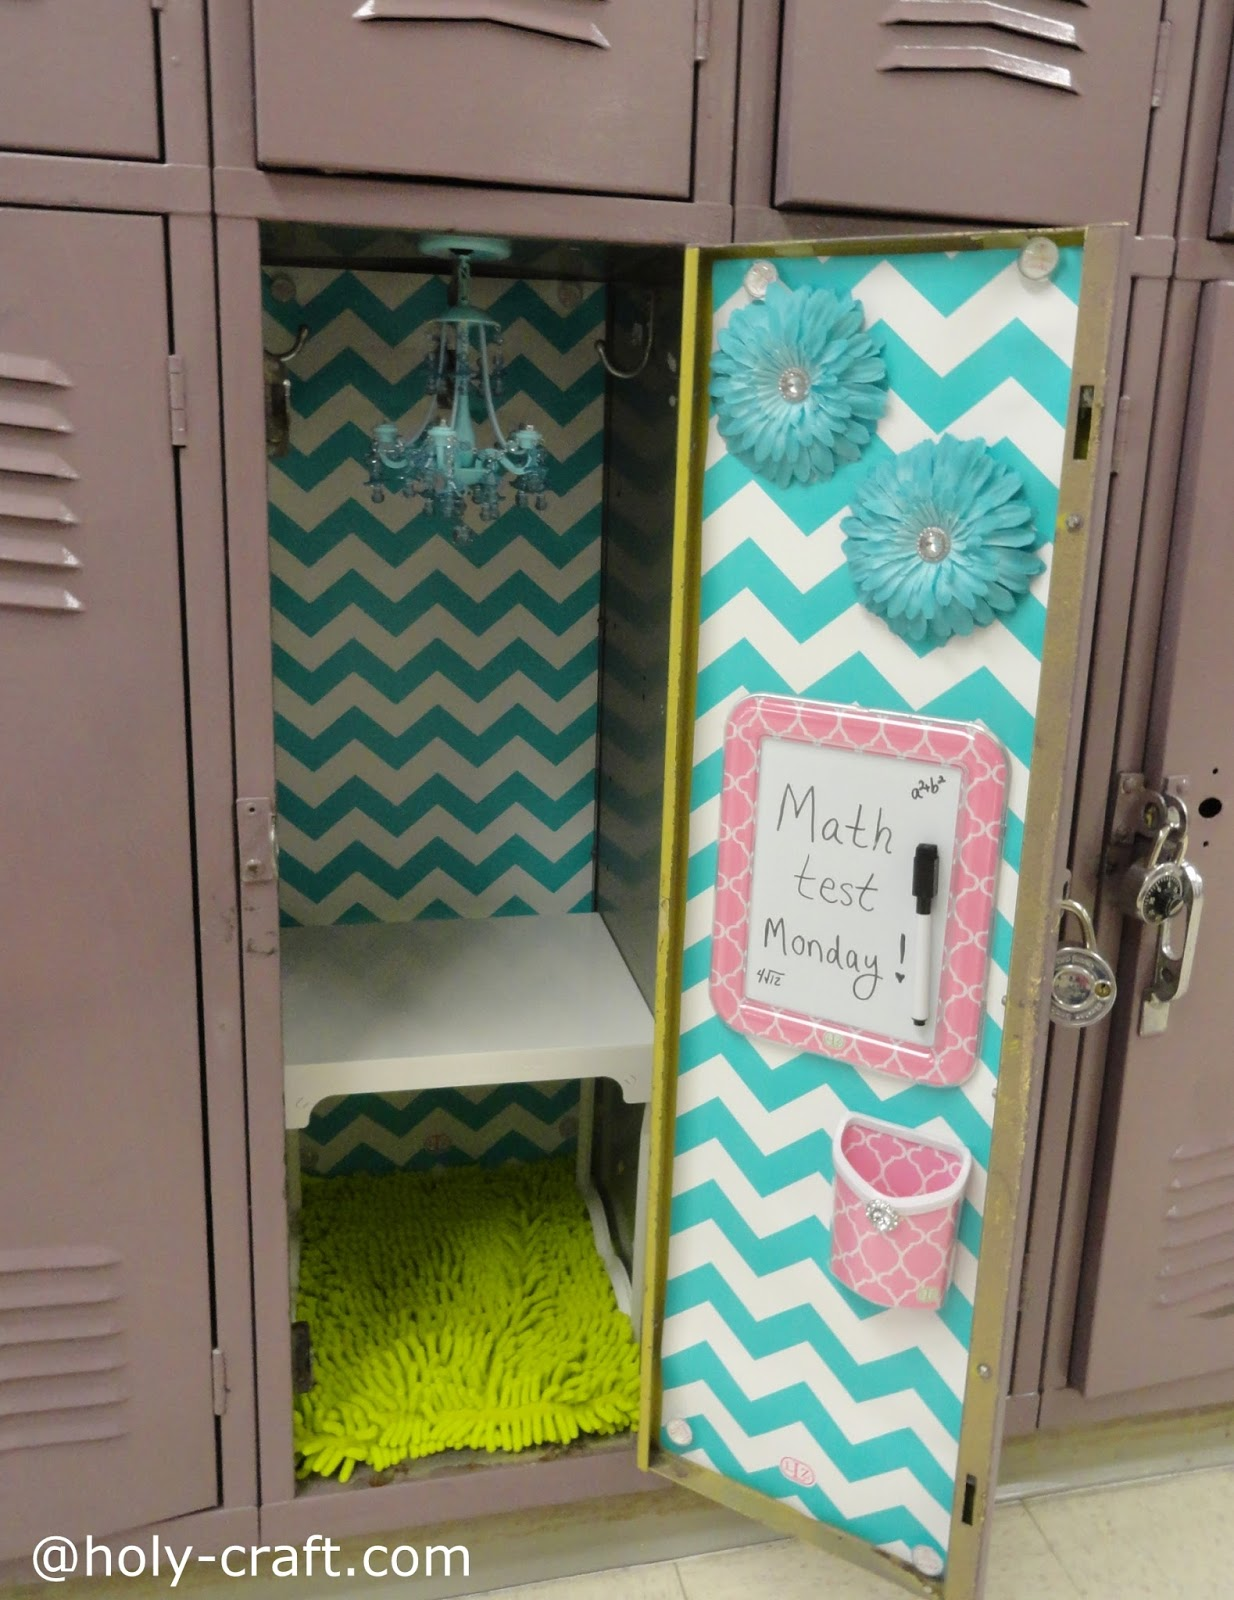 2014 07 01 archive further Locker Cabi moreover Cool Locker Decoration Ideas besides Entryway And Mud Room Closet Ideas furthermore Mudroom Entryway Furniture. on decorating ideas using lockers